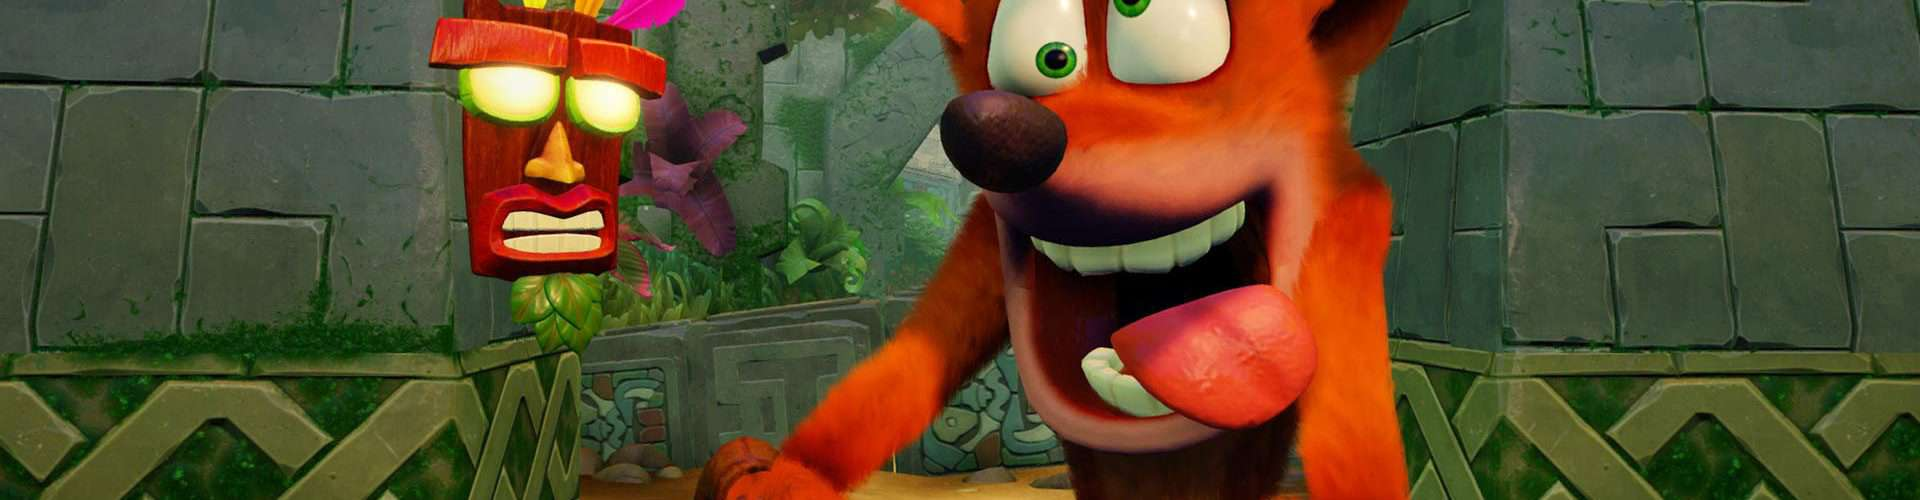 Crash Team Racing: Nitro-Fueled Release Date, News, Trailer and Rumors